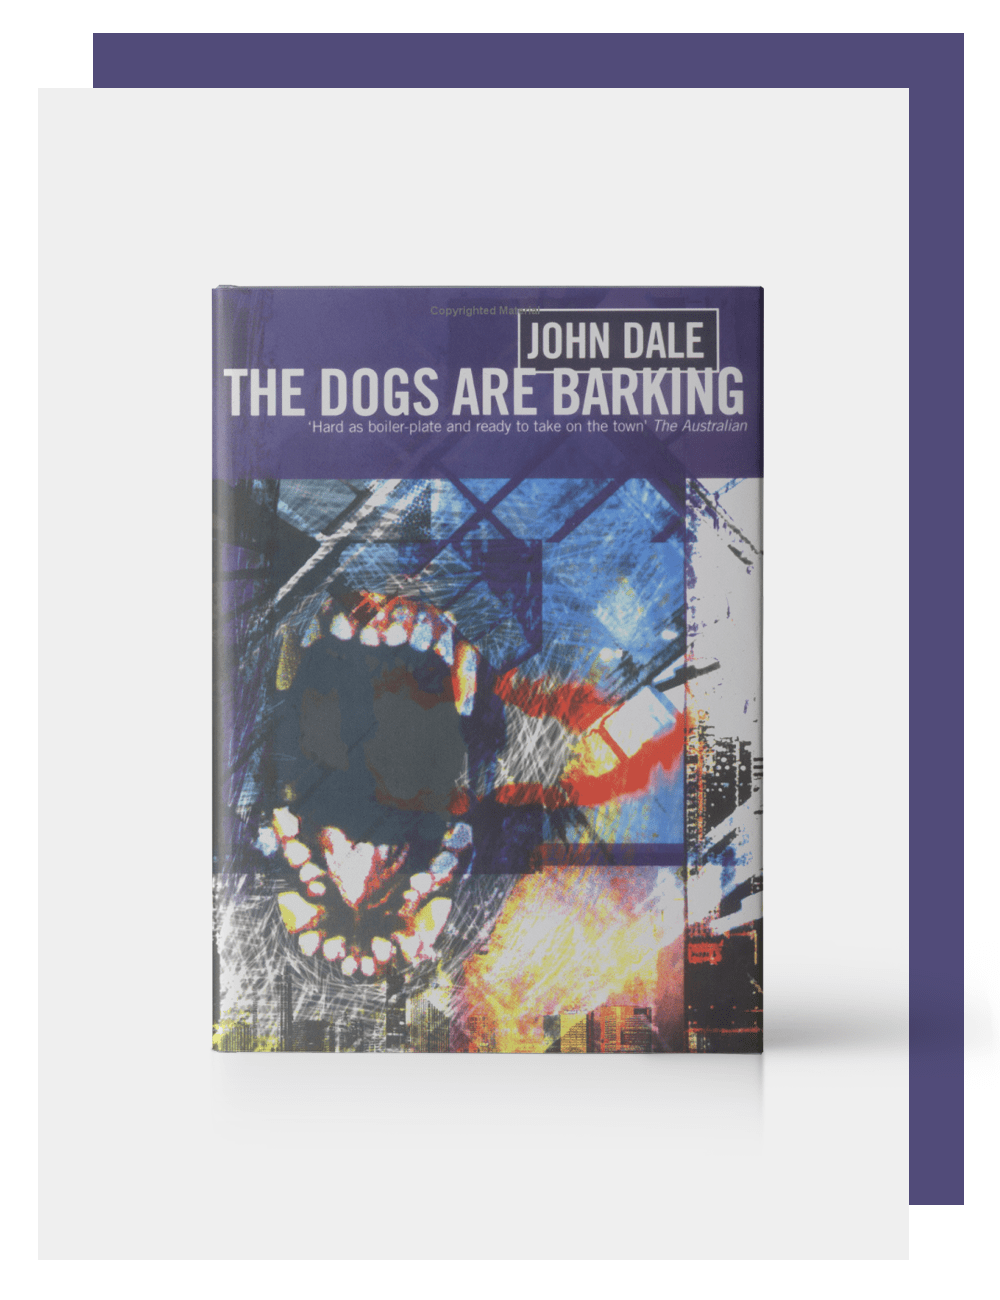 John Dale, Author, The Dogs are Barking